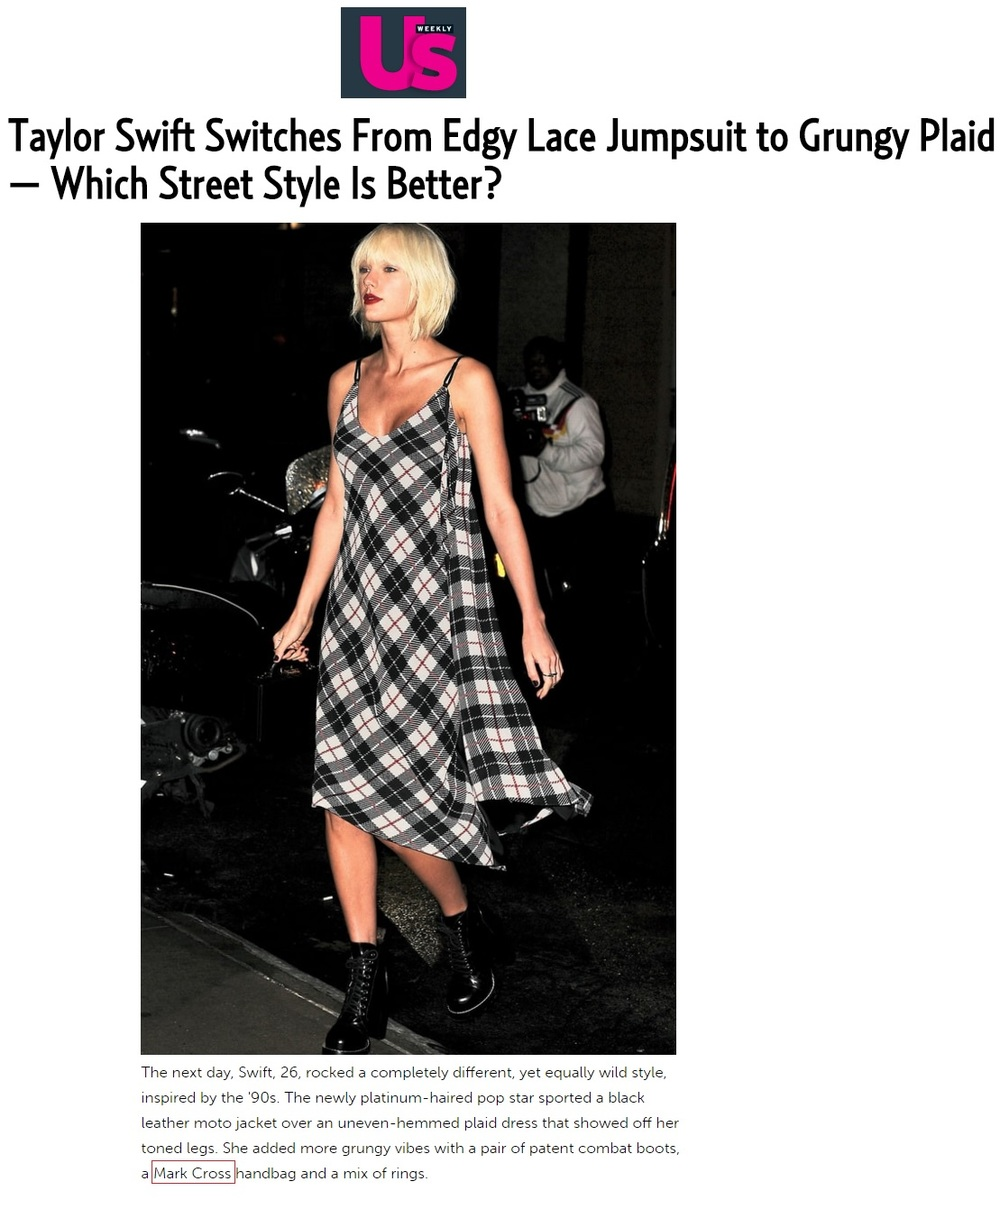 US Magazine.com - Taylor Swift Switches From Edgy Lace Jumpsuit to Grung....jpg